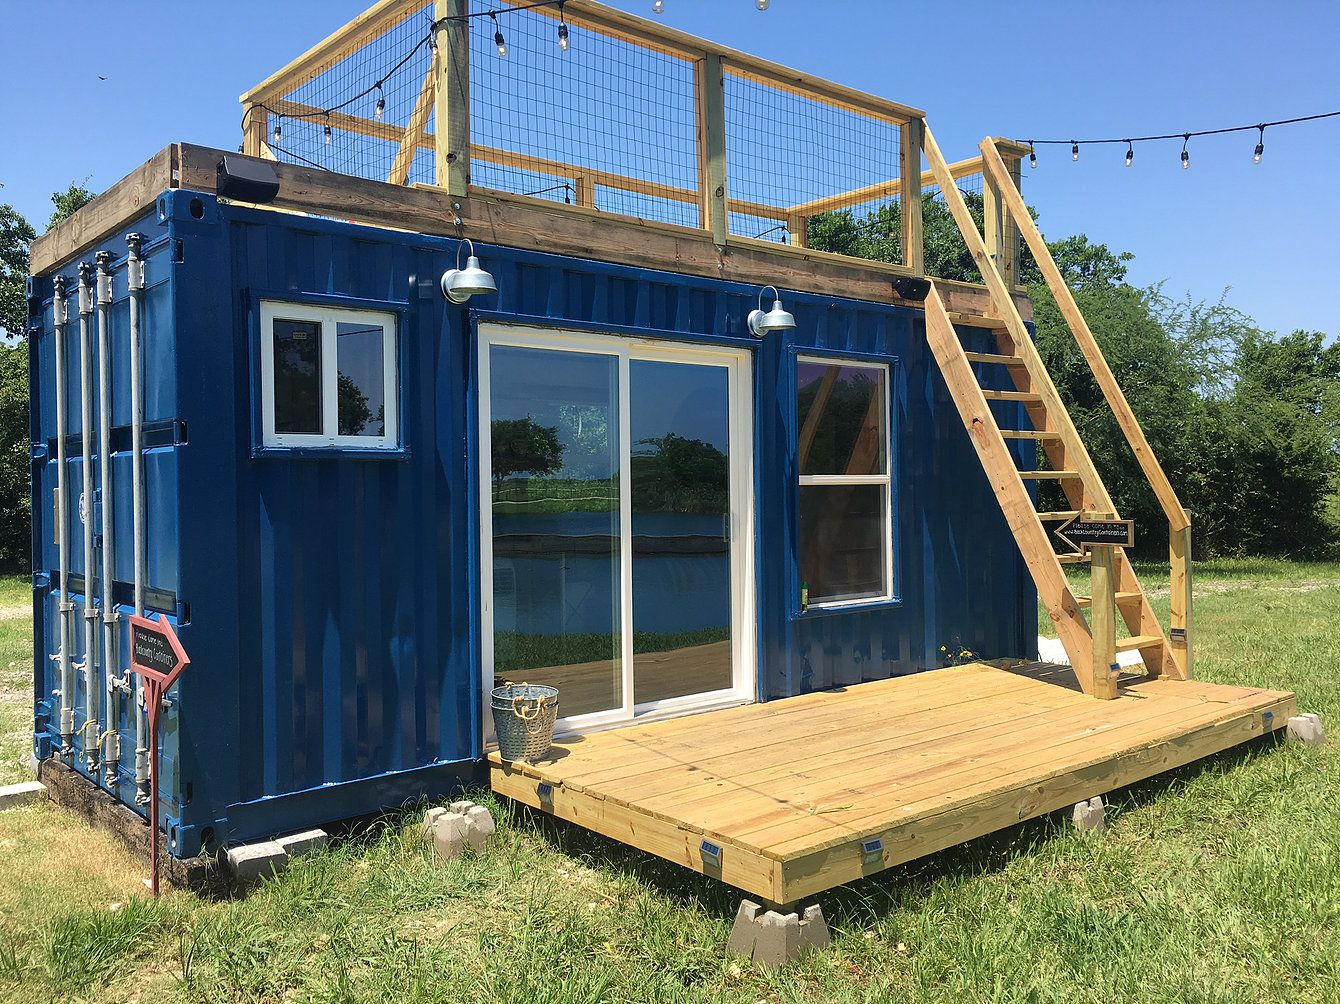 The Rustic Retreat Is Made Out Of One 20 Foot Container